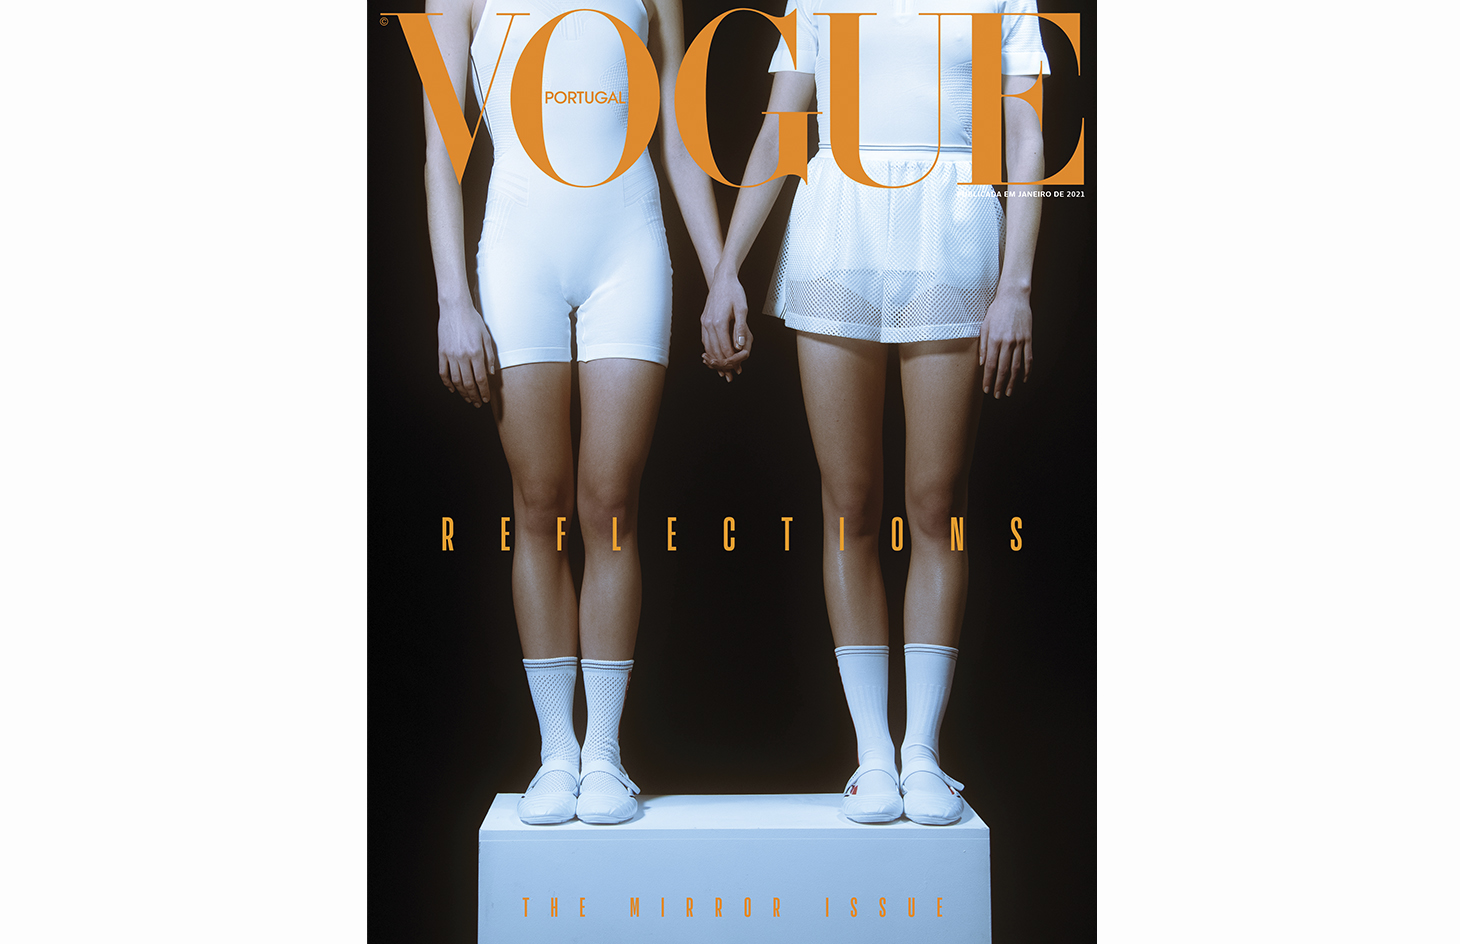 vogue portugal editorial white clothing twins short hair